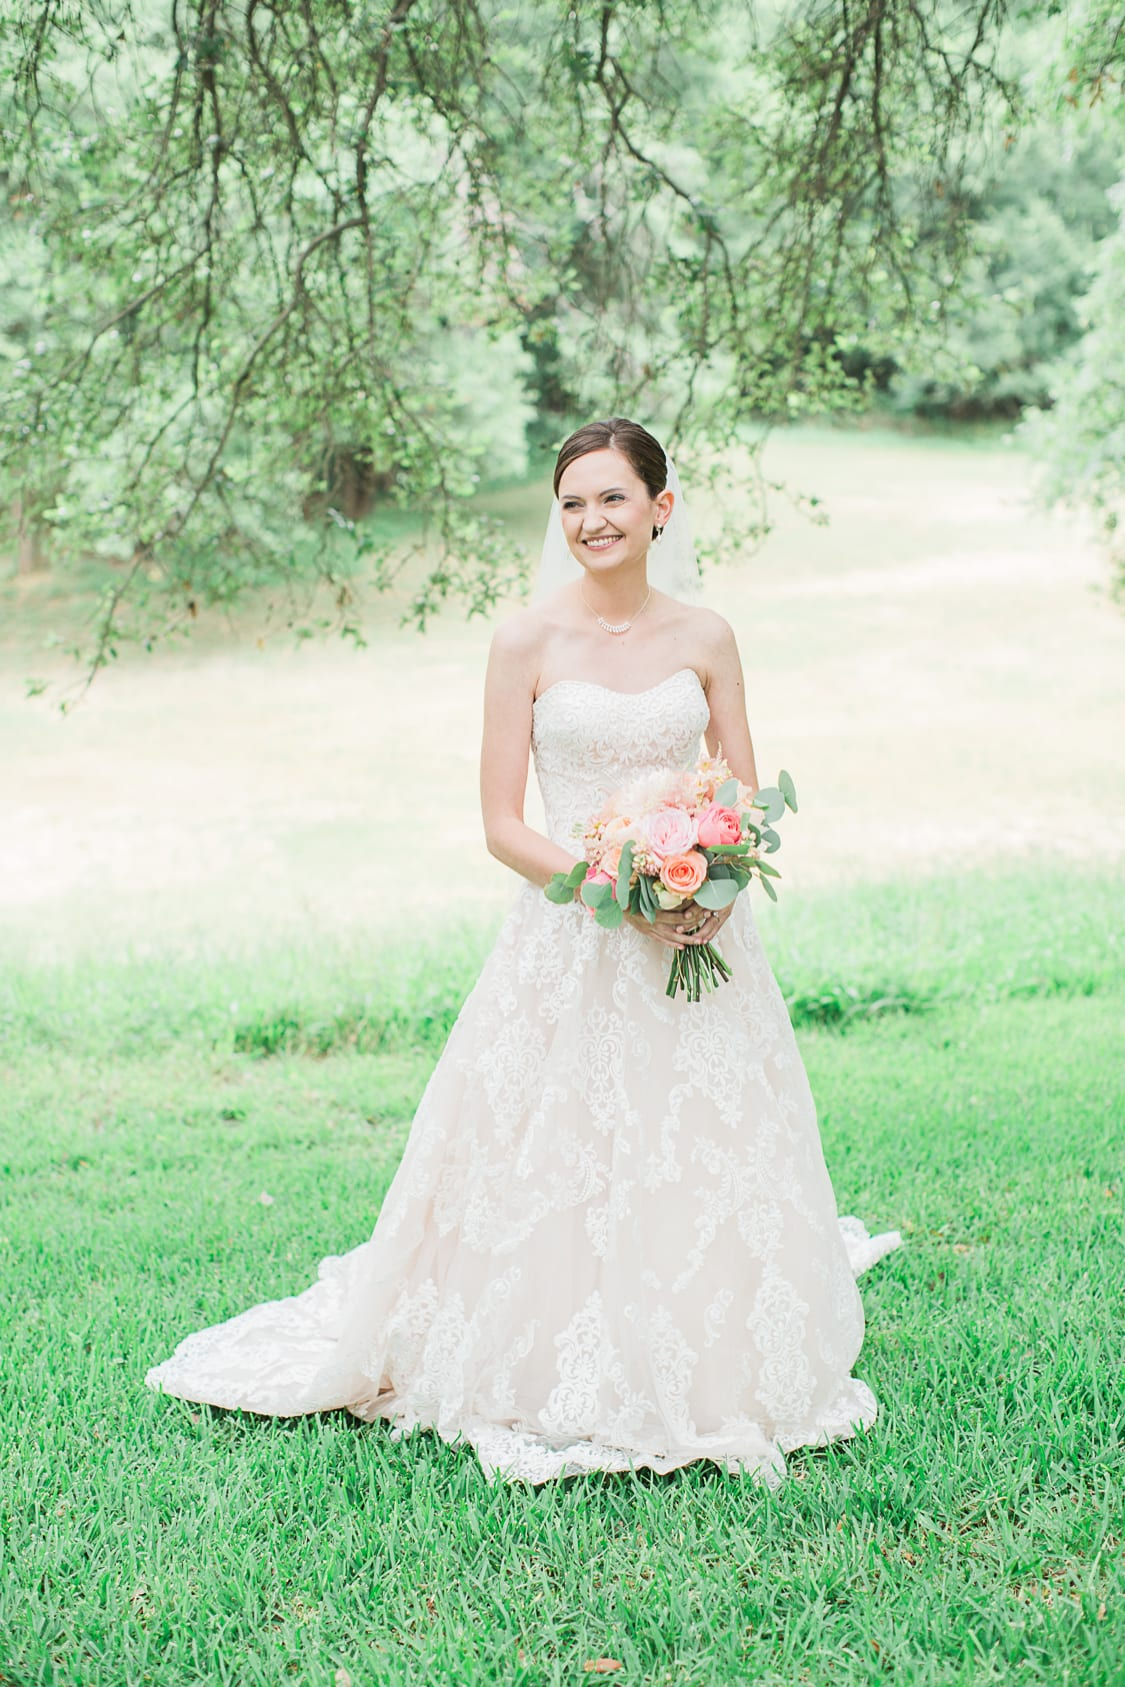 dallas-wedding-photographer-jessica-quadra-rb-6